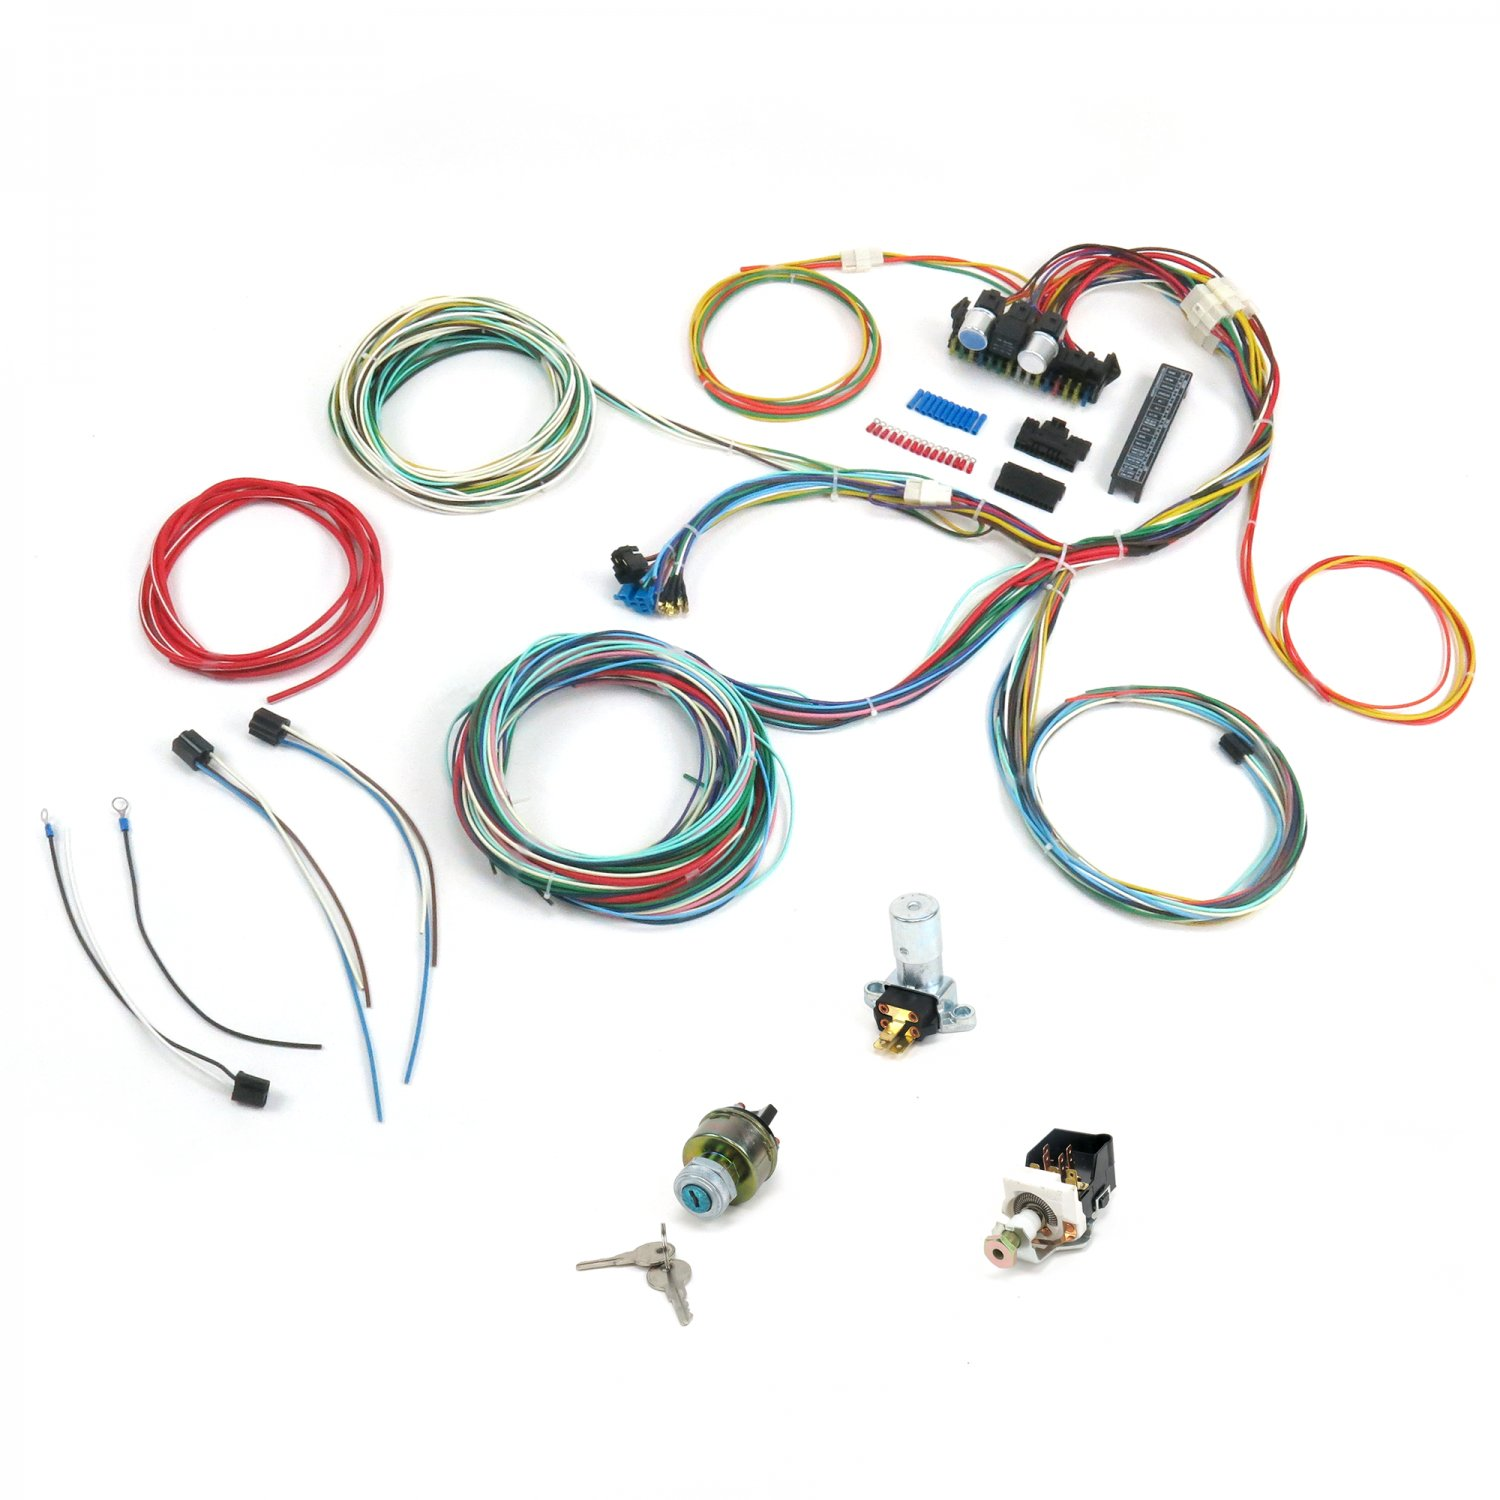 1500 1964 1970 ford mustang comet falcon wire harness upgrade kit 1965 mustang painless wiring harness at crackthecode.co